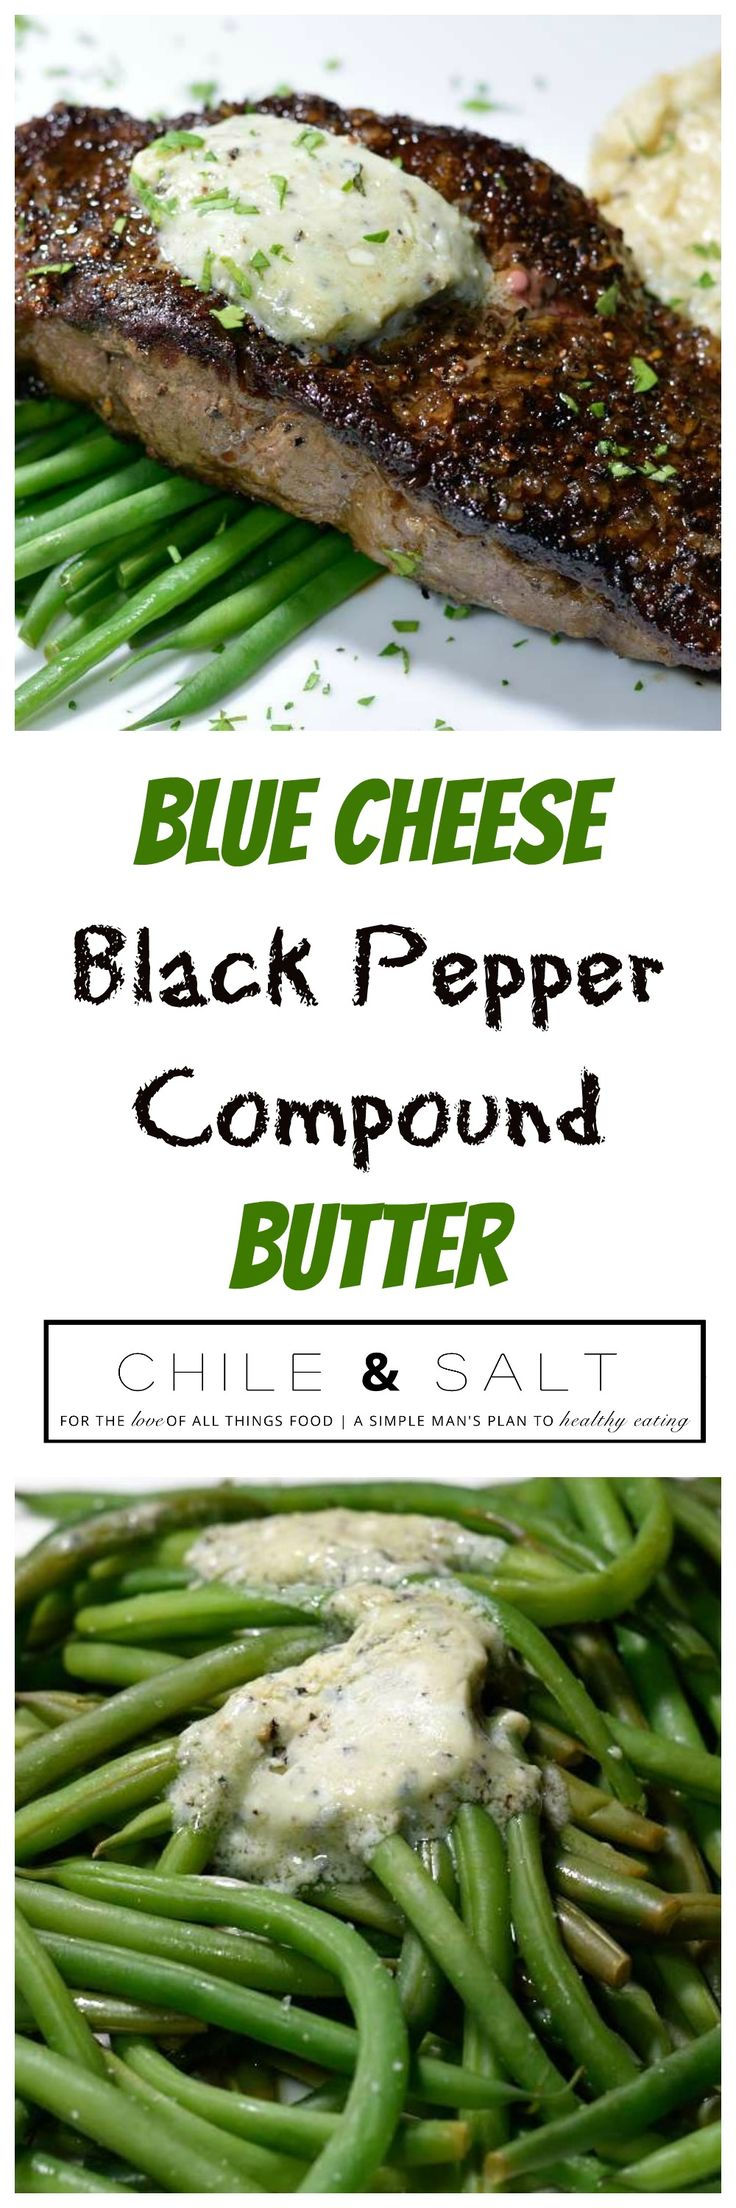 Compound butter, do you use them? They`re such an easy way to really take the flavor up a notch or three with meats, fish, chicken, vegetables or use as an instasauce kind of thing with pasta. Better yet they take all of about 5 minutes to make & are crazy versatile!